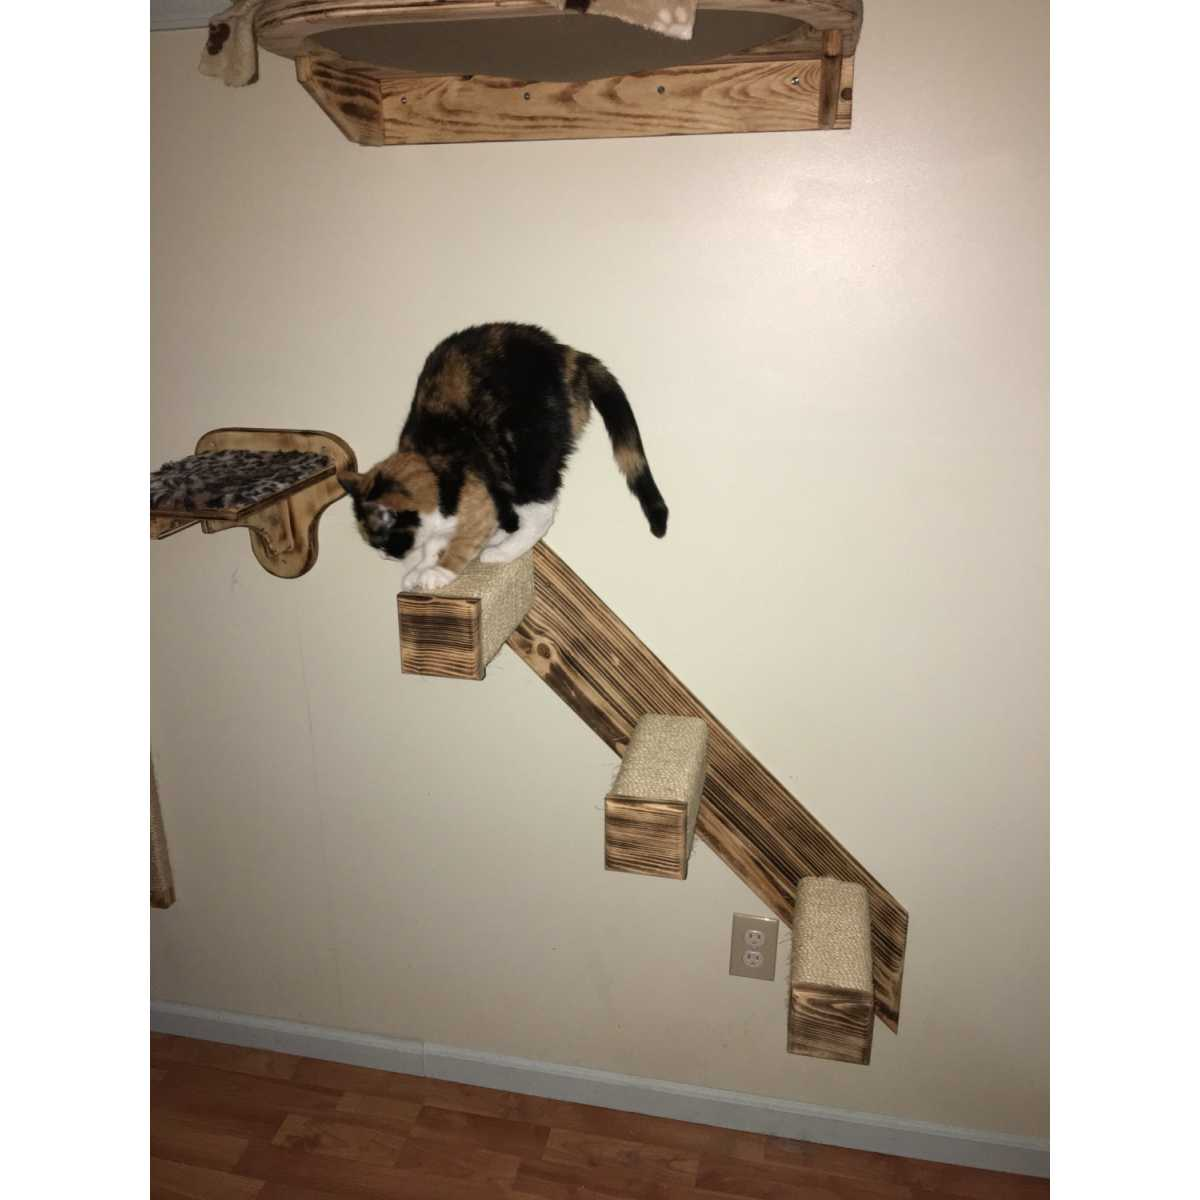 Ordinaire 3 Step Sisal Stair Wall Mounted Cat Climber